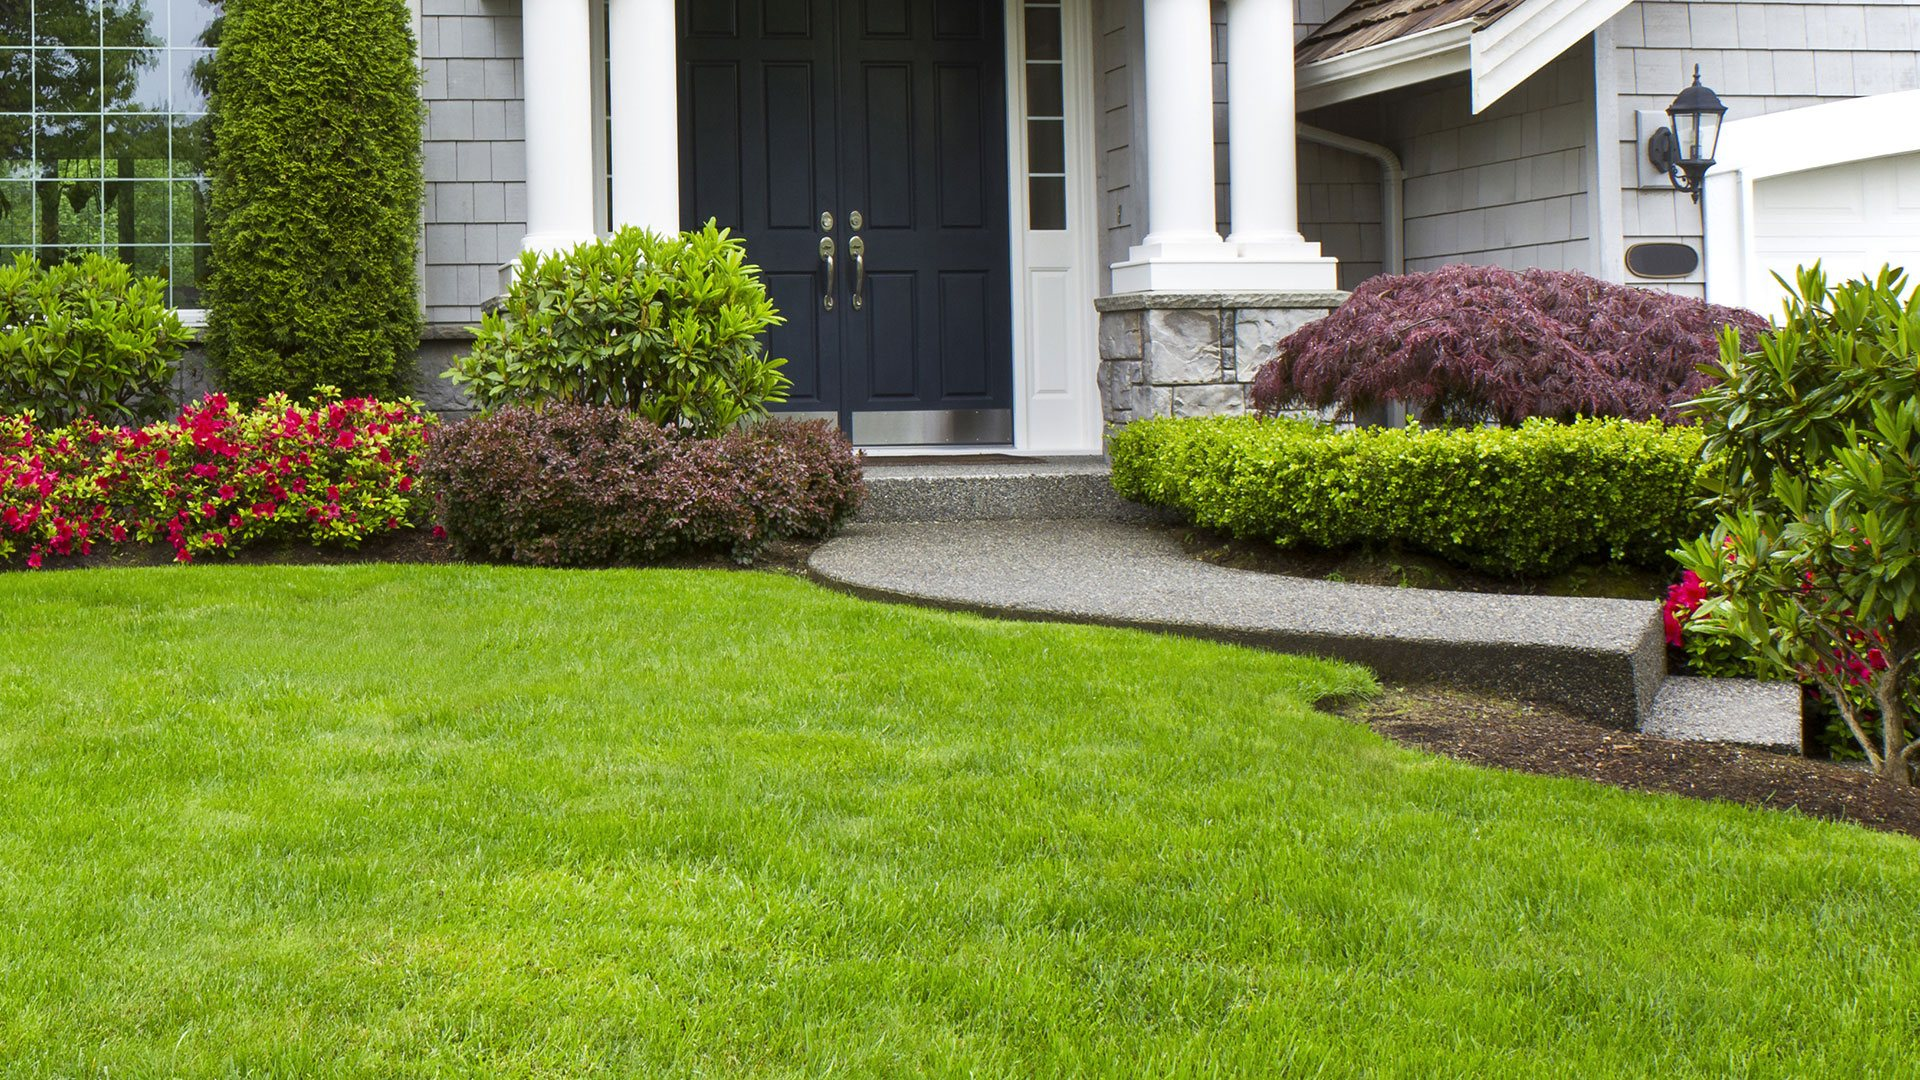 Home pittsburgh garden design lawn maintenance and for Gardening and maintenance